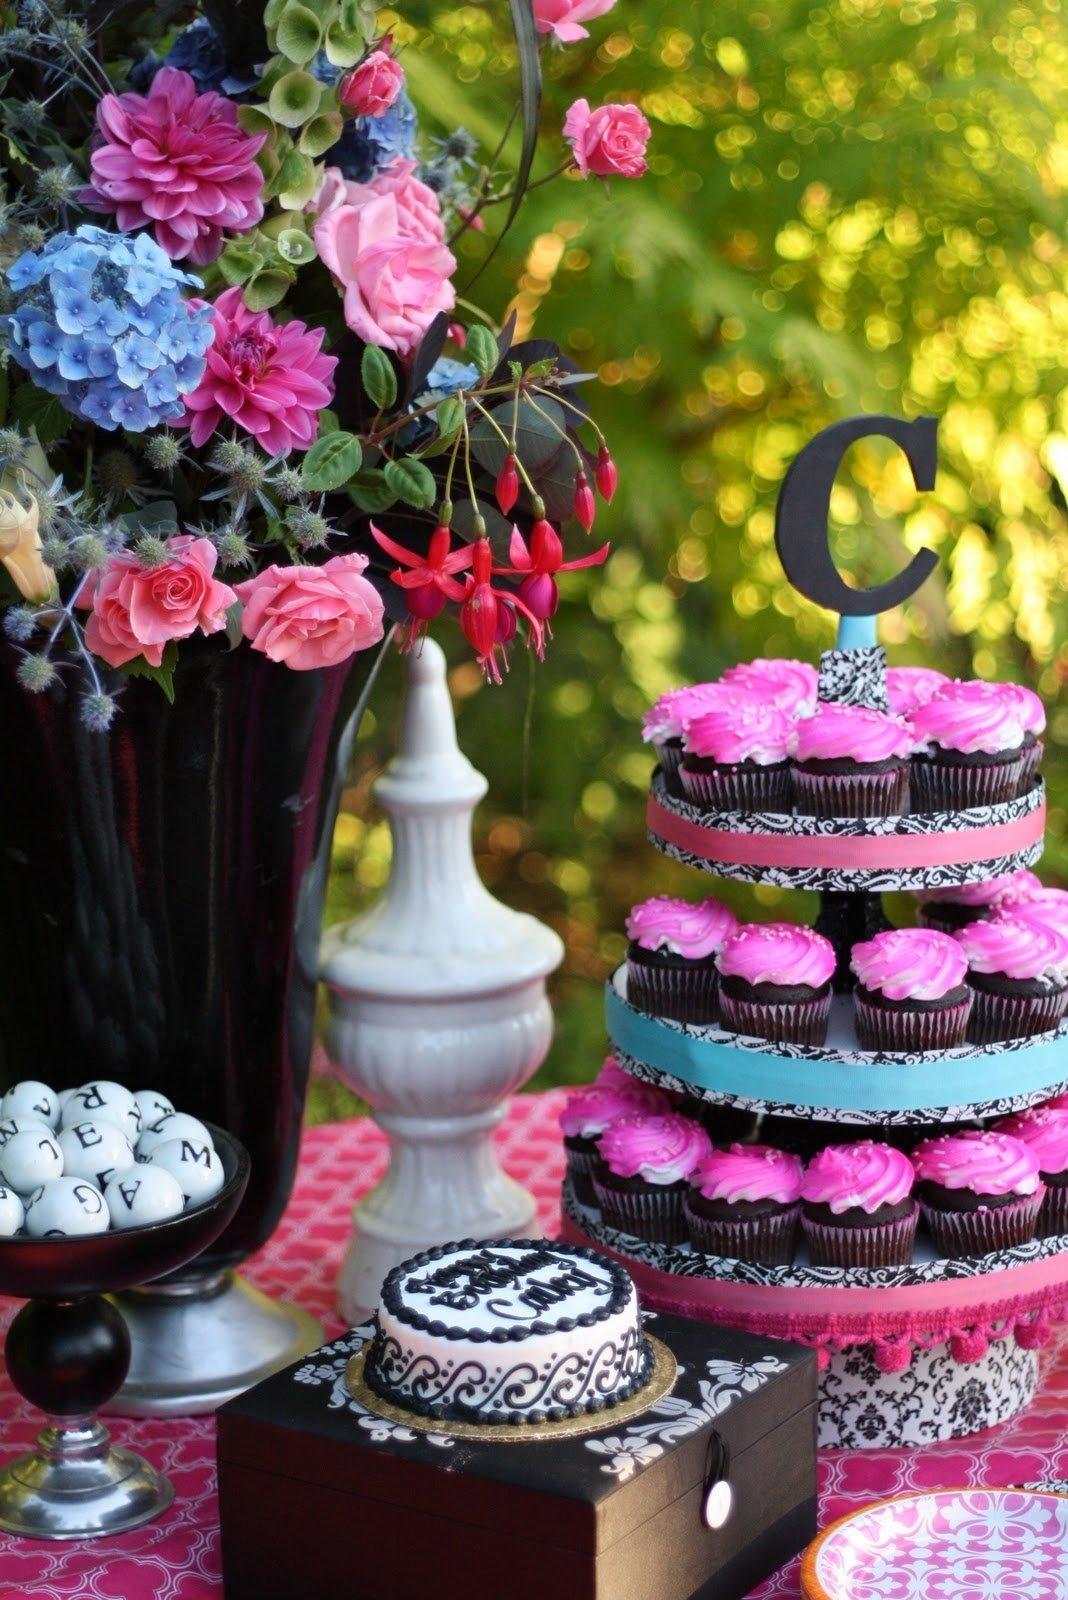 10 Nice Birthday Party Ideas For Teenage Girls birthday party ideas birthday party ideas teenage girl 6 2020